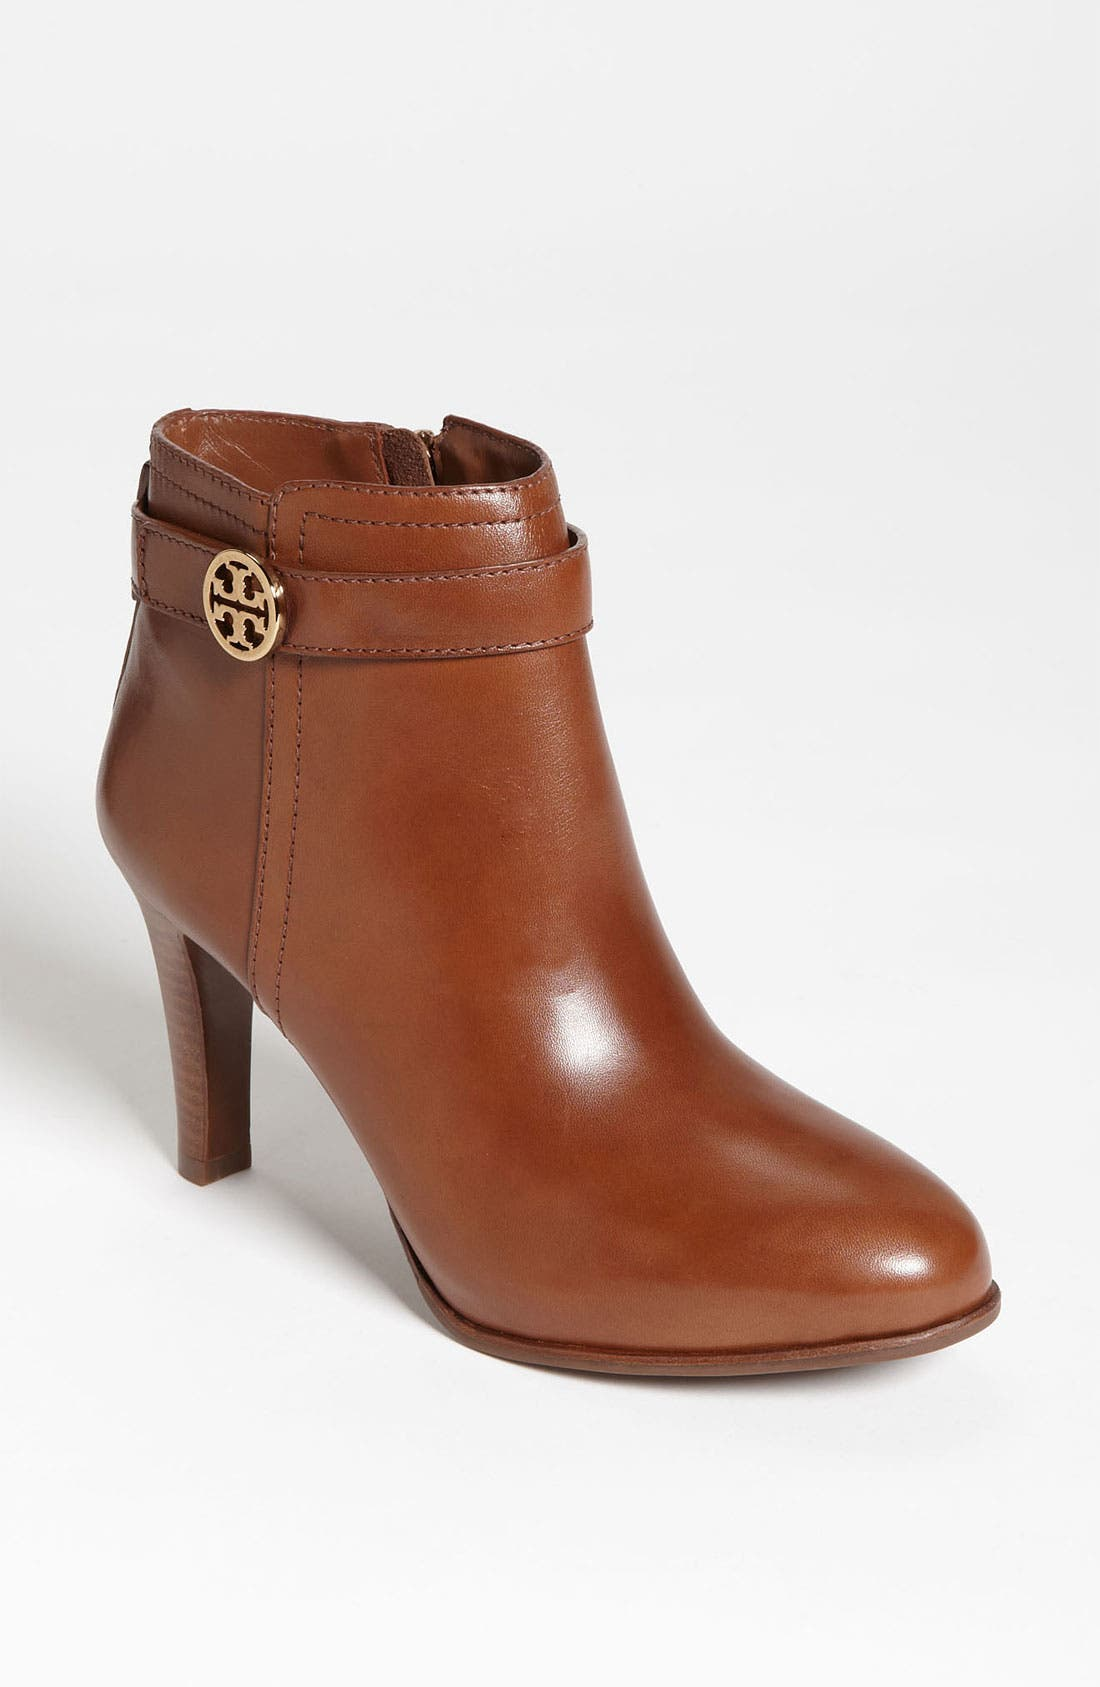 Alternate Image 1 Selected - Tory Burch 'Bristol' Bootie